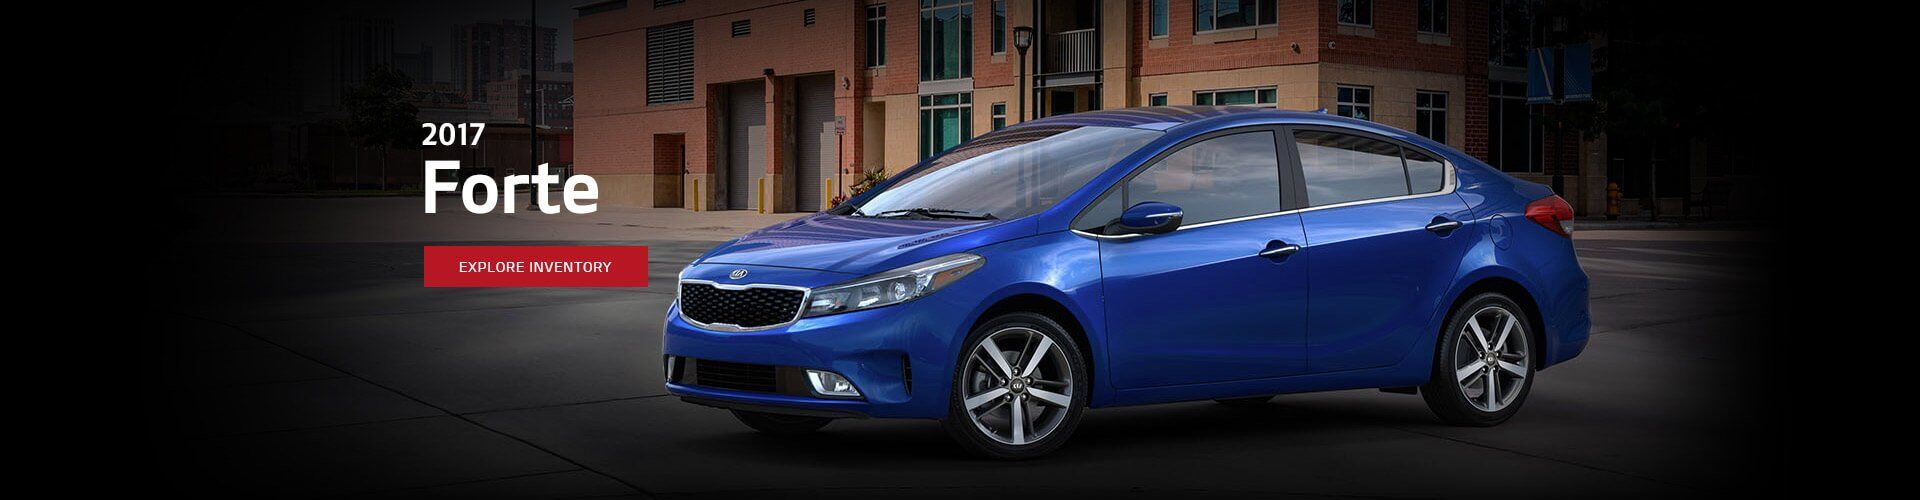 New Kia Forte at Paul Cerame Kia